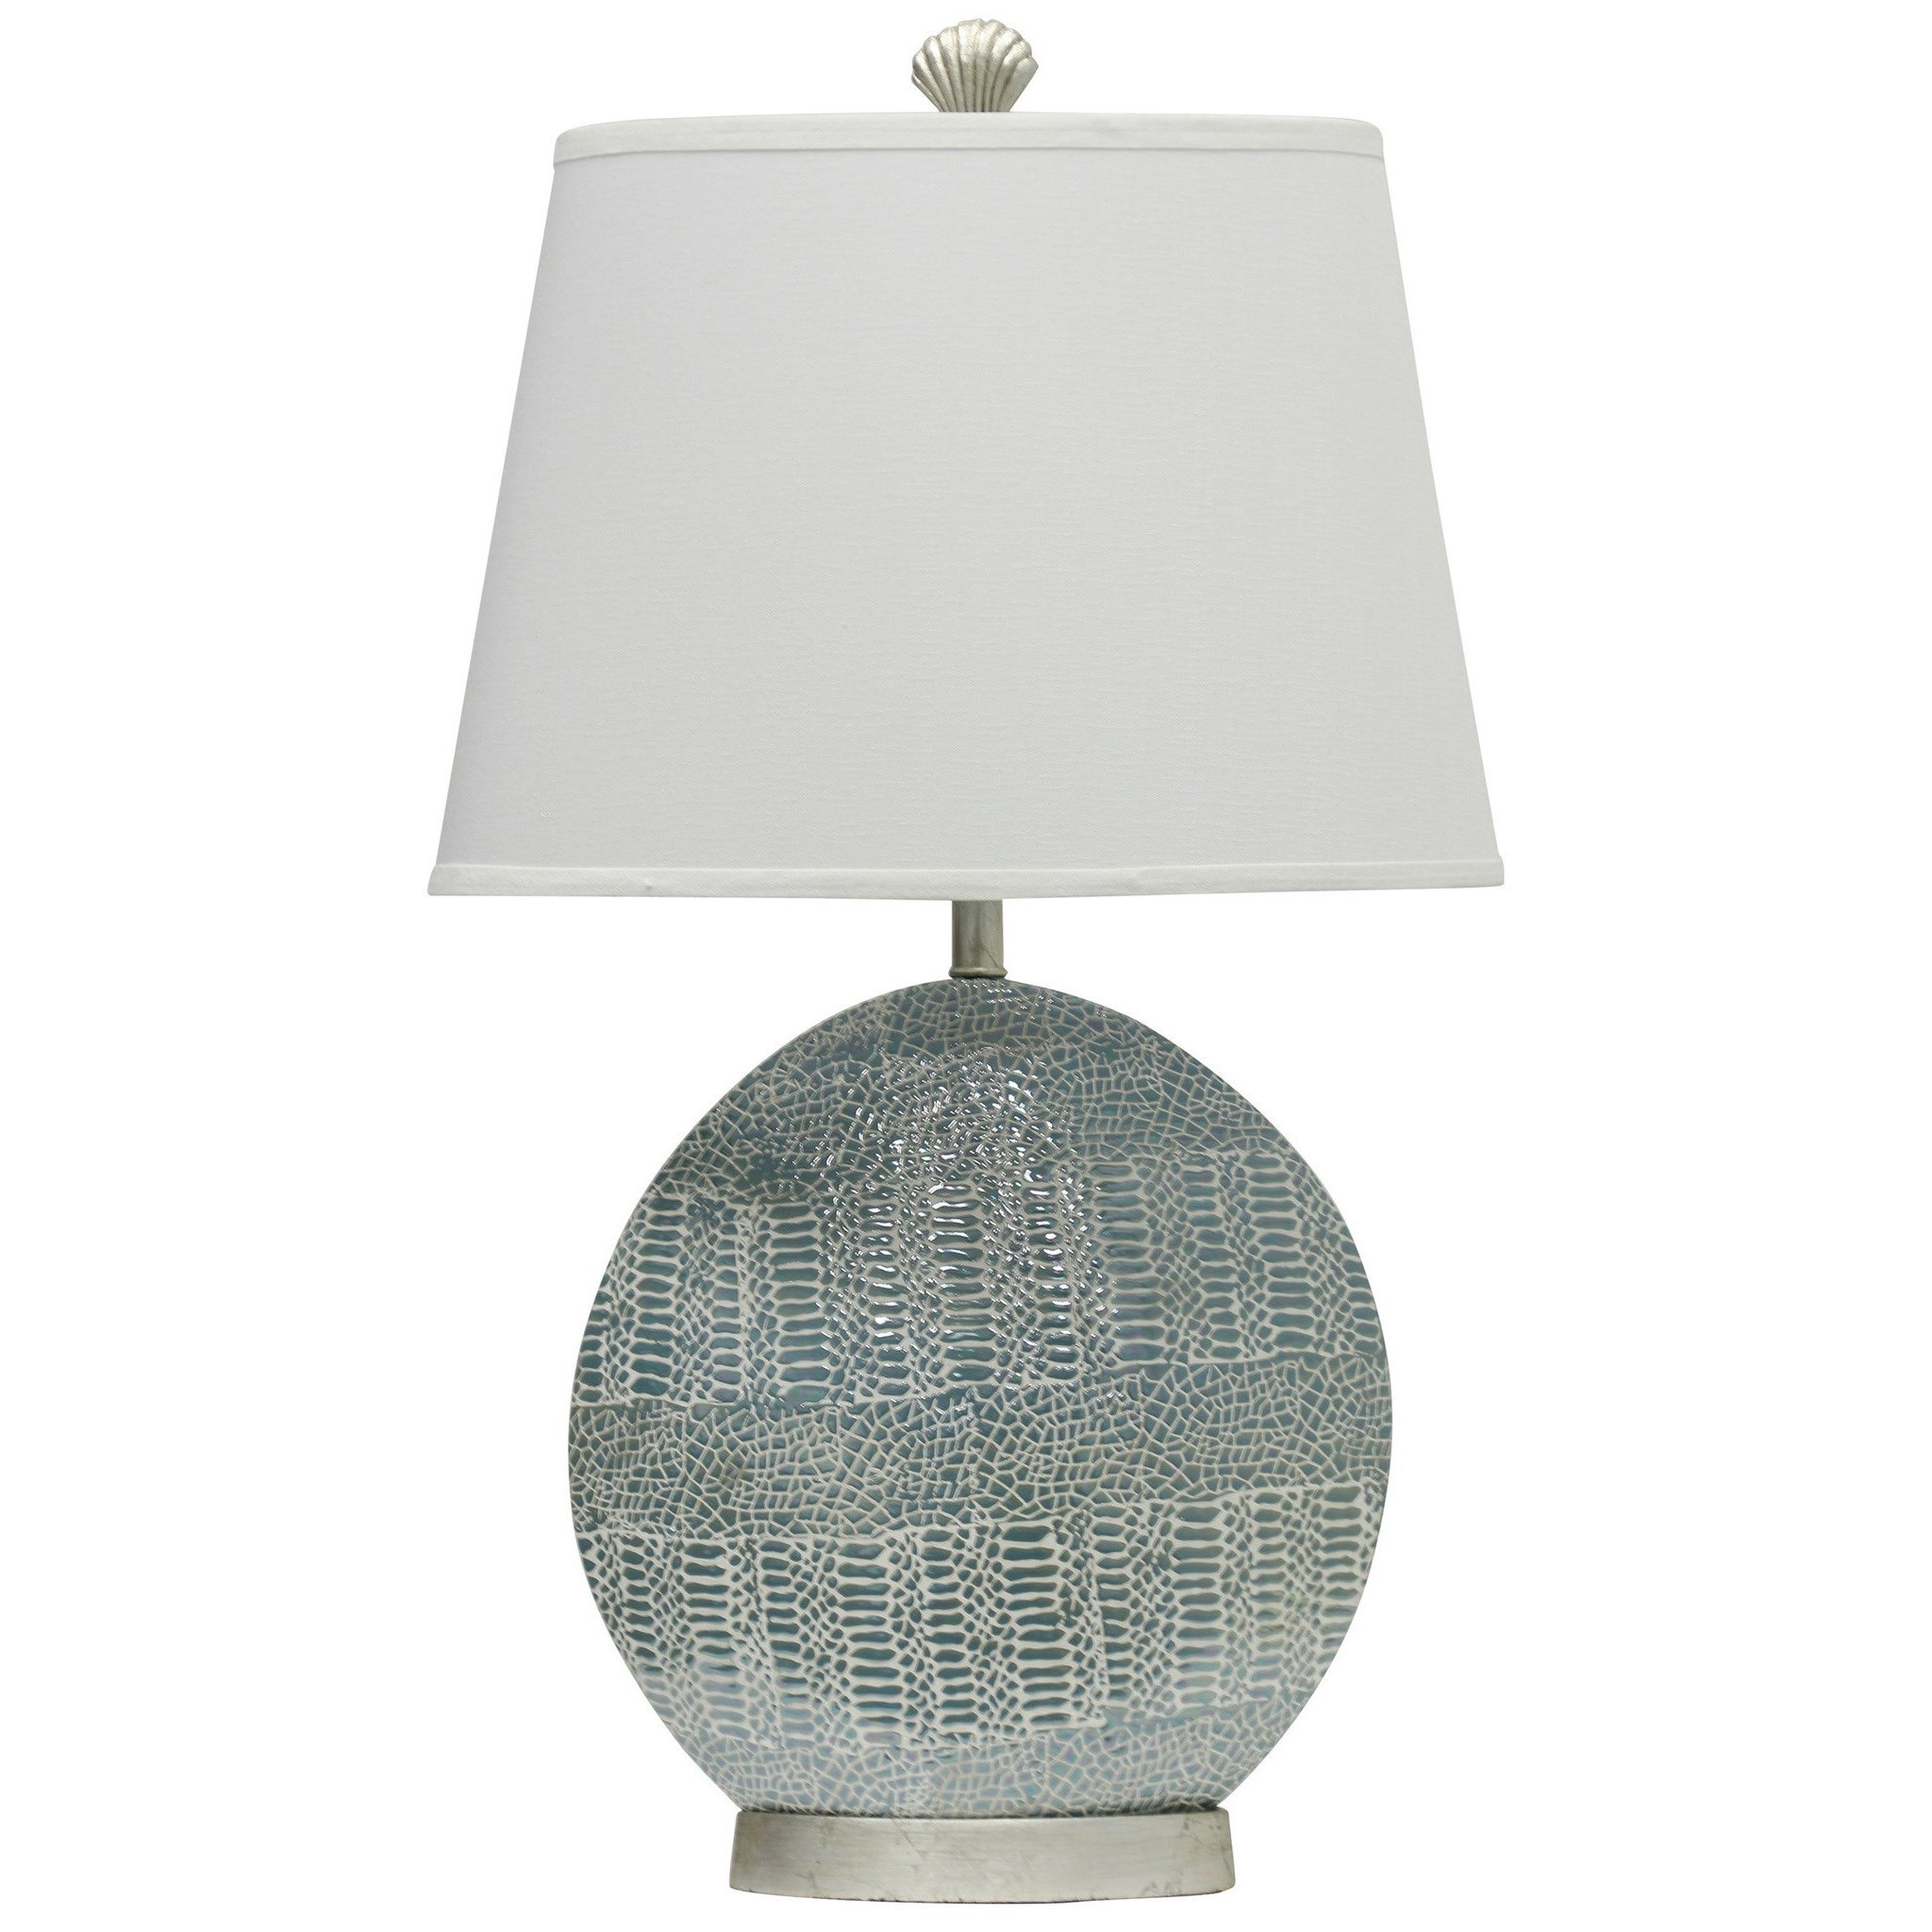 Lamps Crackled Ceramic Lamp by Jane Seymour by StyleCraft at Alison Craig Home Furnishings